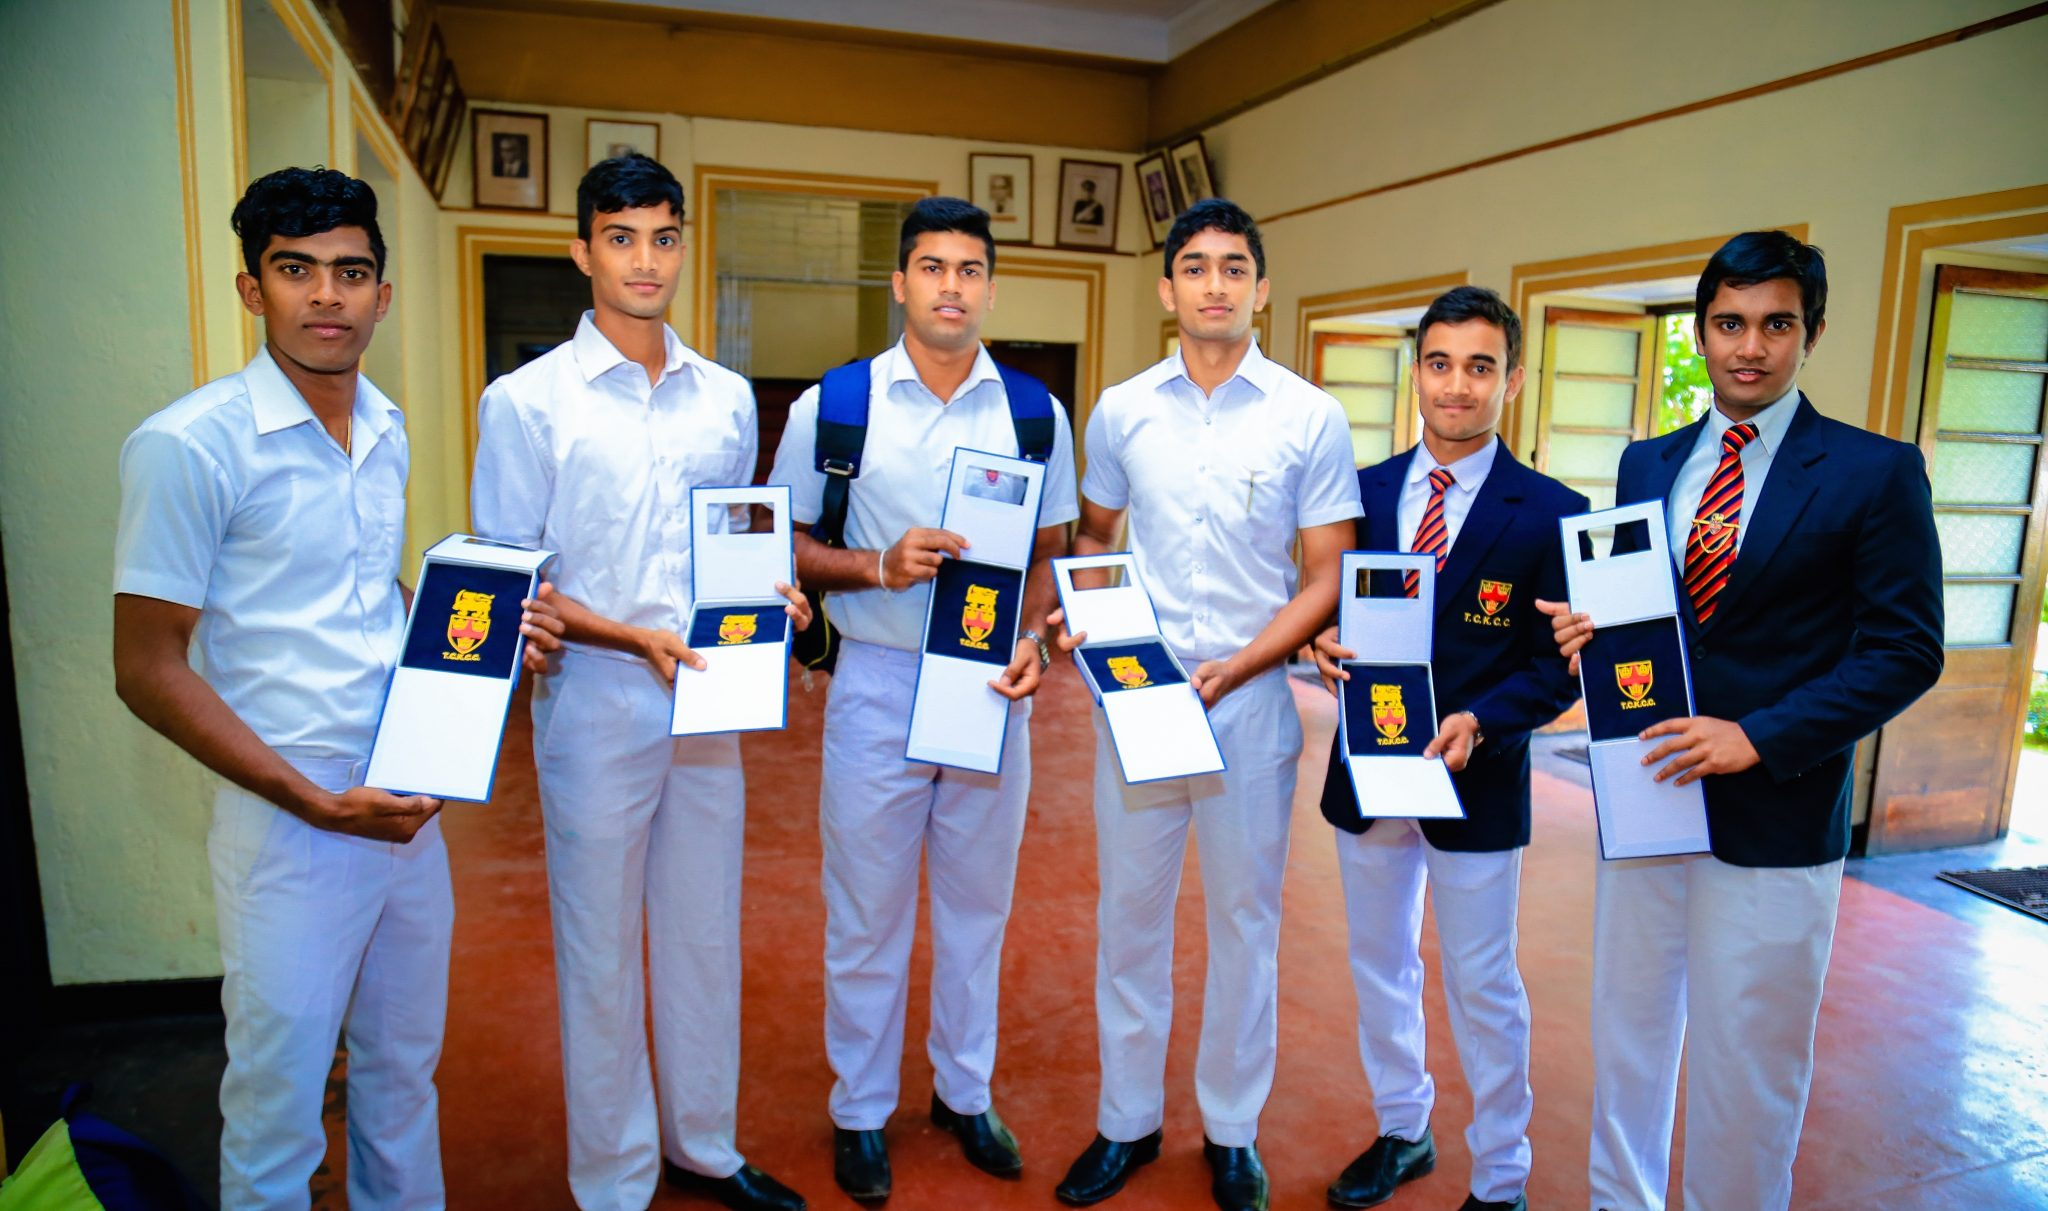 Lionsmen with medals at Trinity College Kandy